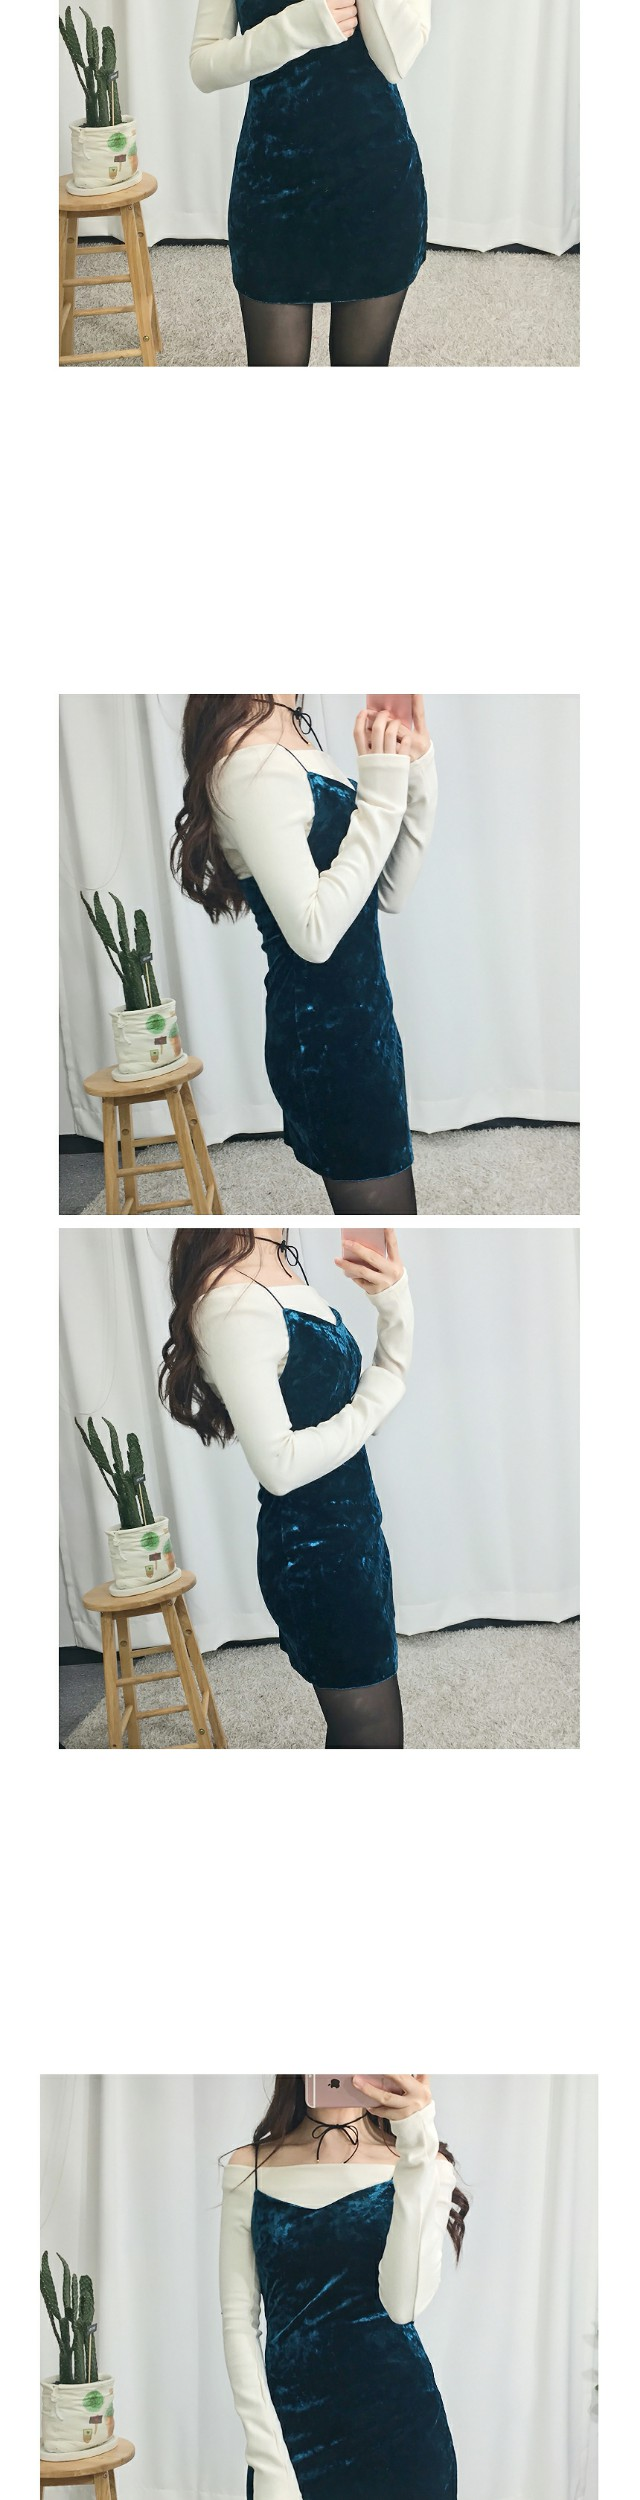 Velvet Slab Dress One-Year-Old Look, Recommended by Patrick ♥